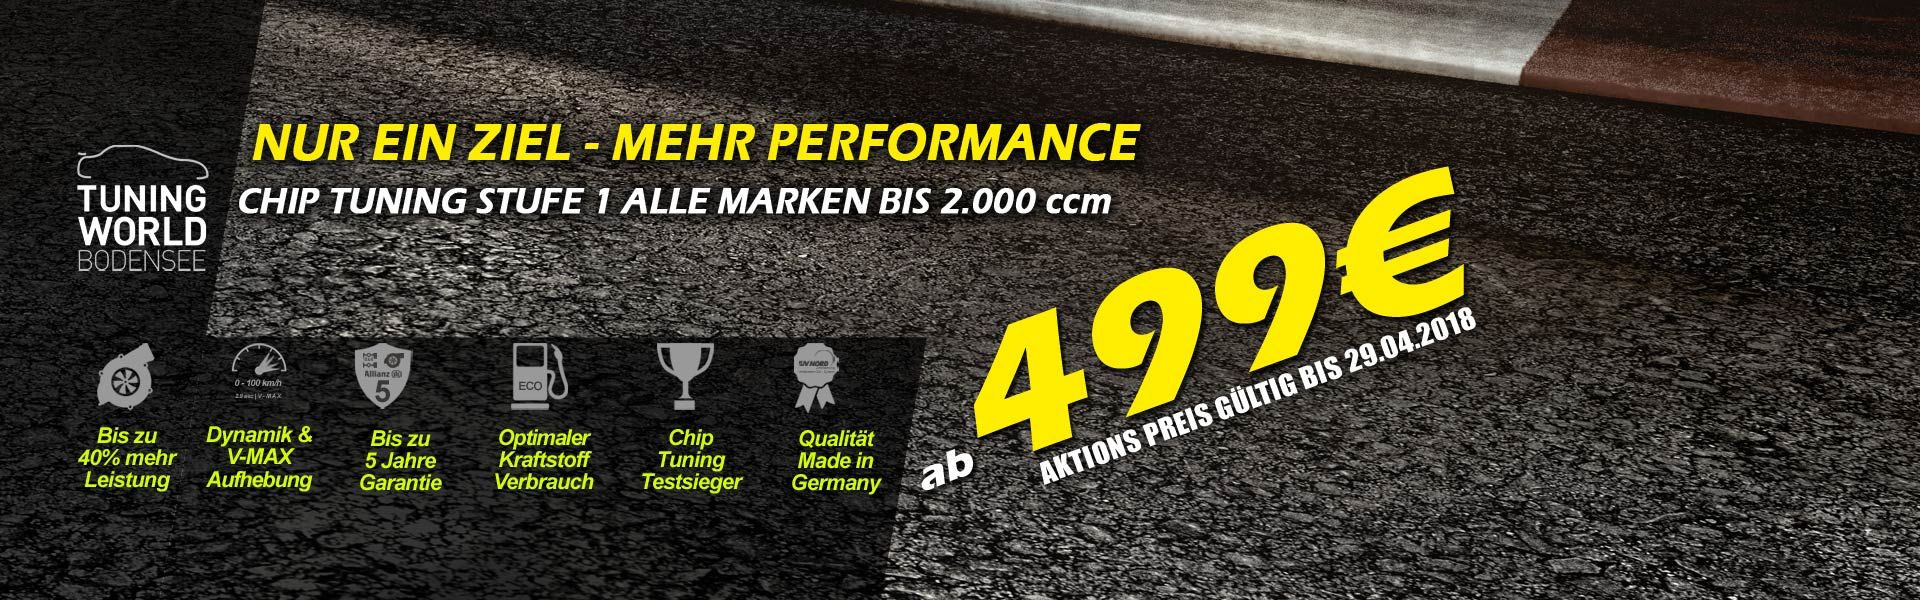 CHIP TUNING LEVEL 1 di 499 € *